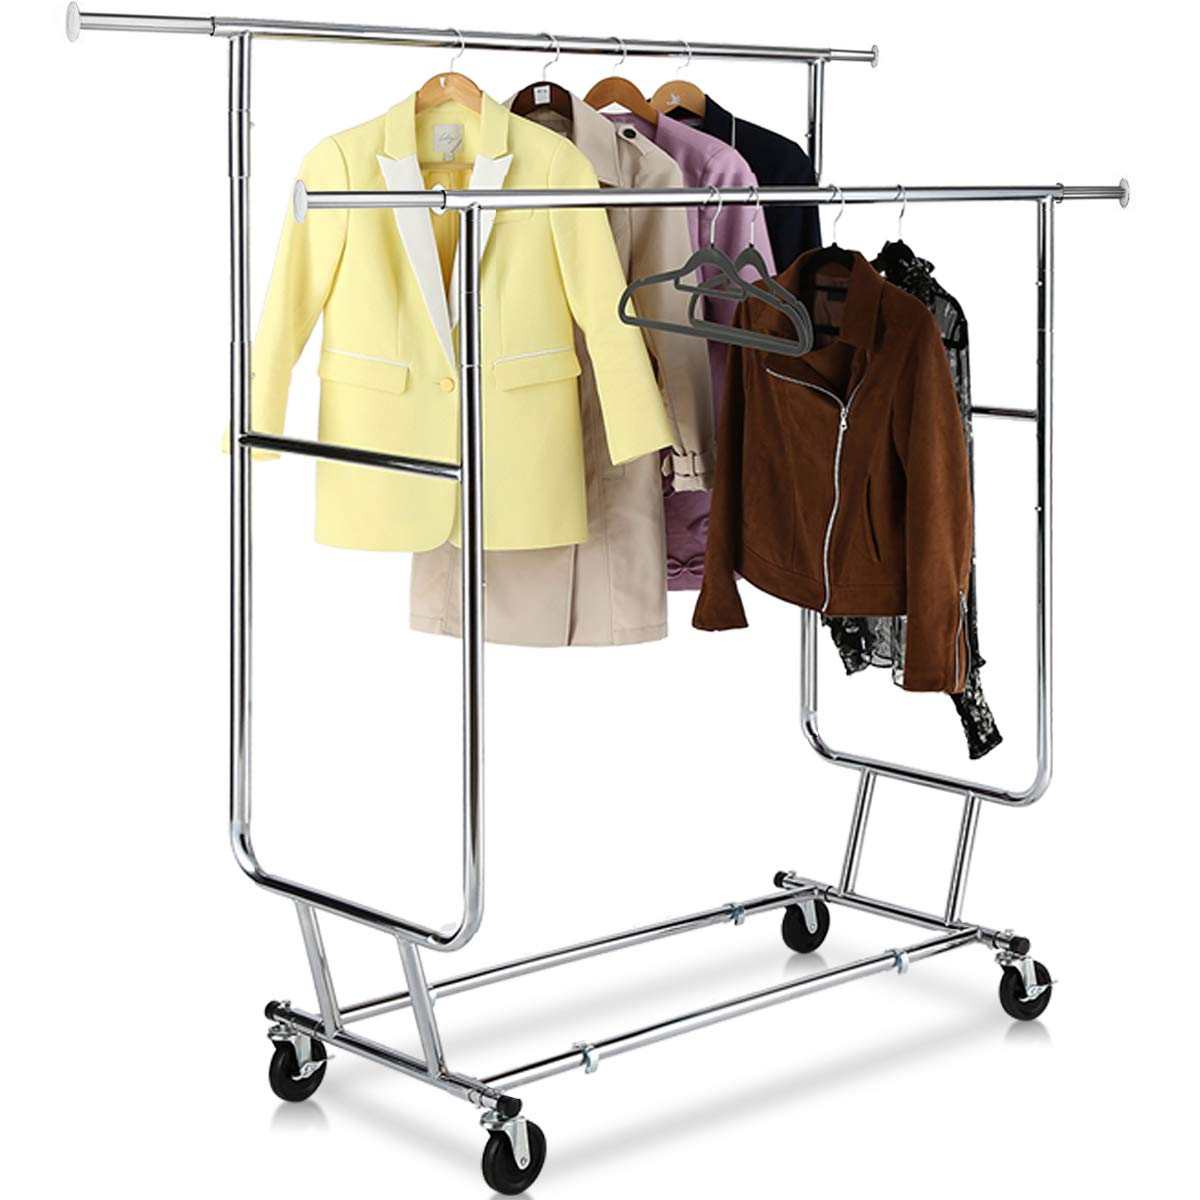 TomCare Garment Rack Double Clothes Racks